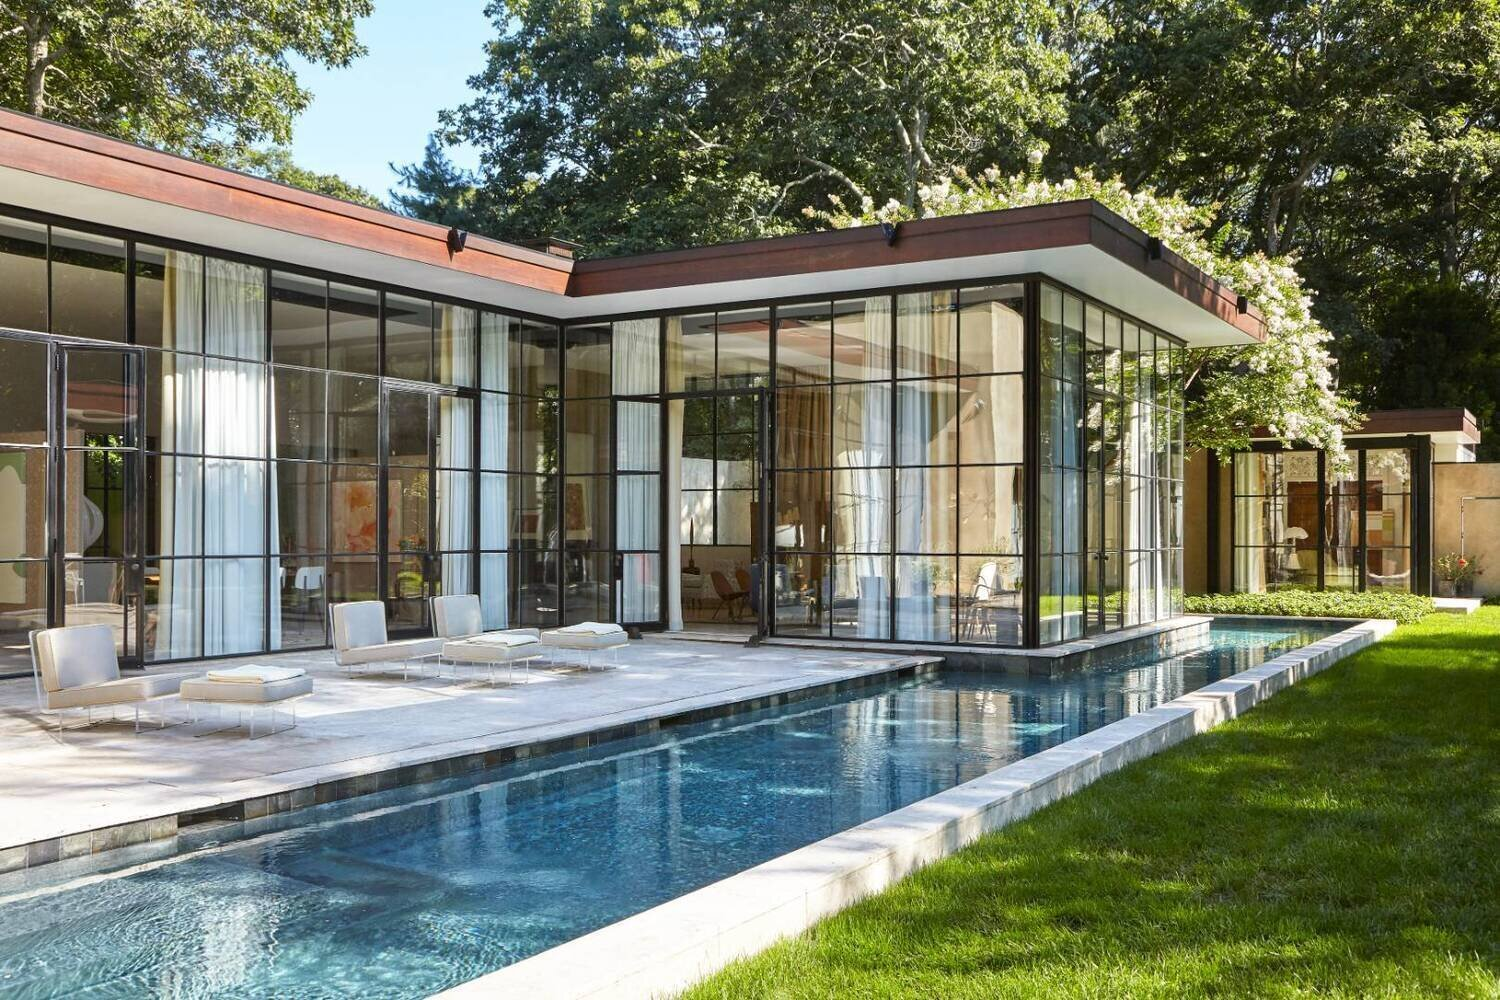 Architect Michael Haverland's Celebrated Glass House Hits the Market in East Hampton at $5M